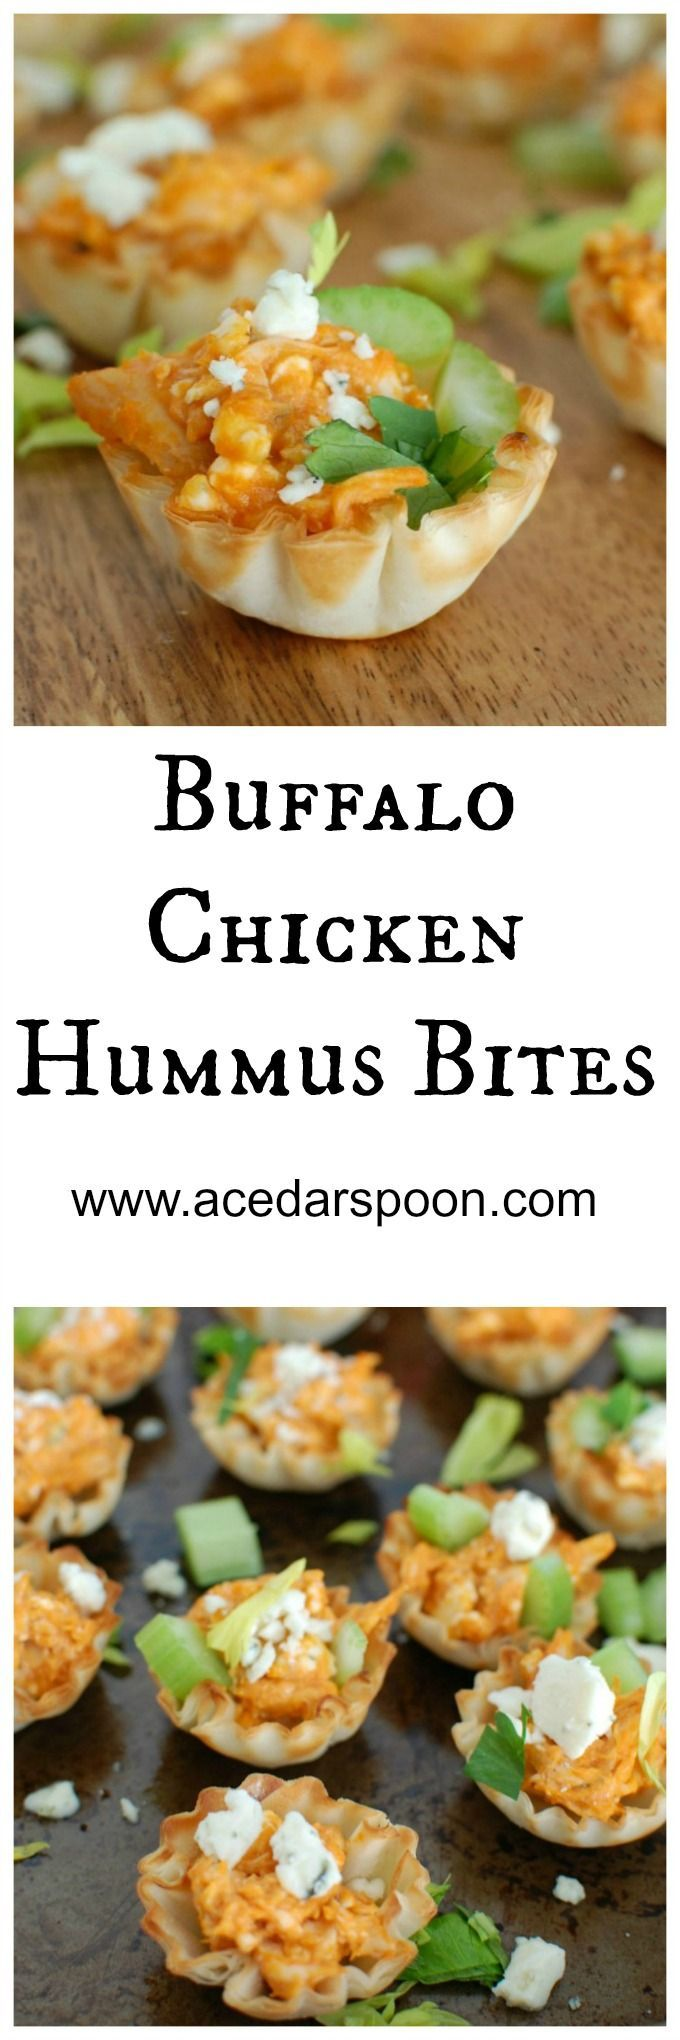 Buffalo Chicken Hummus Bites are a healthy twist on your favorite buffalo chicken dip using hummus instead of cream cheese.  This creamy, spicy dip is baked inside of a mini fillo dough shell and then topped with more fresh blue cheese and celery.  These are the ultimate tailgating appetizer!// A Cedar Spoon